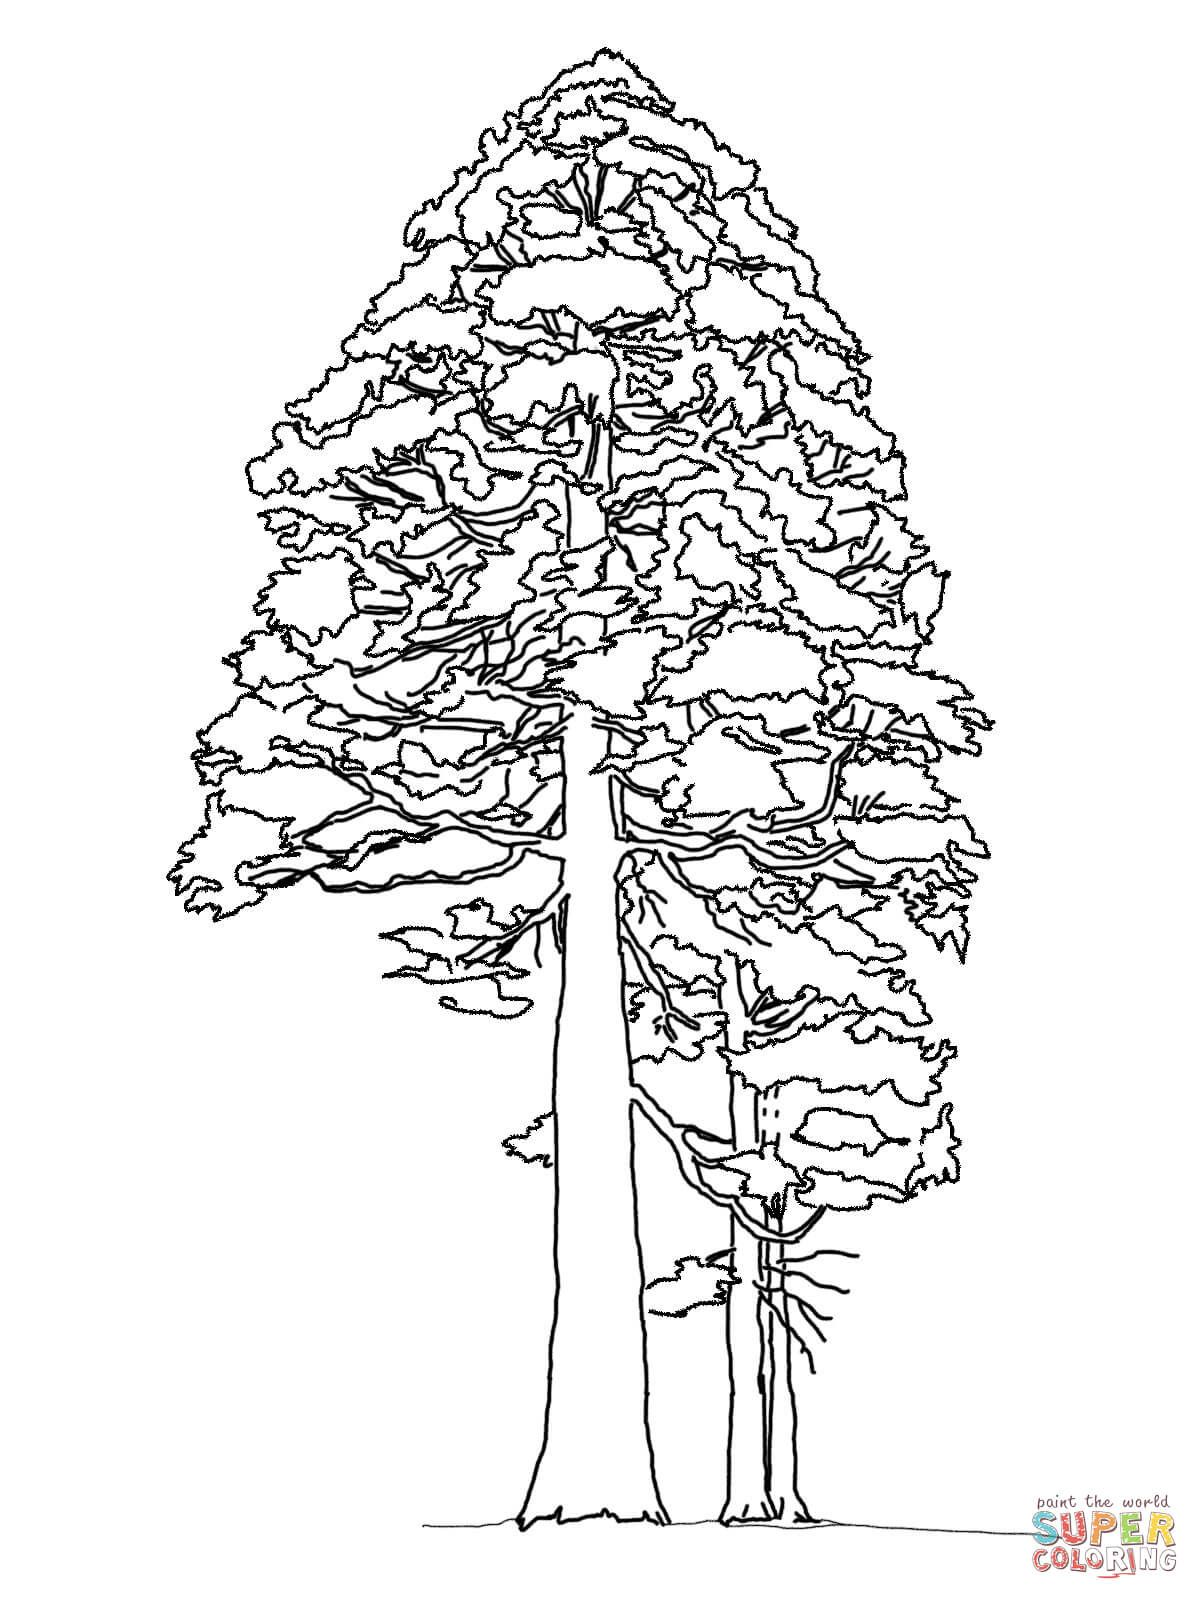 Giant Sequoia or Redwood coloring